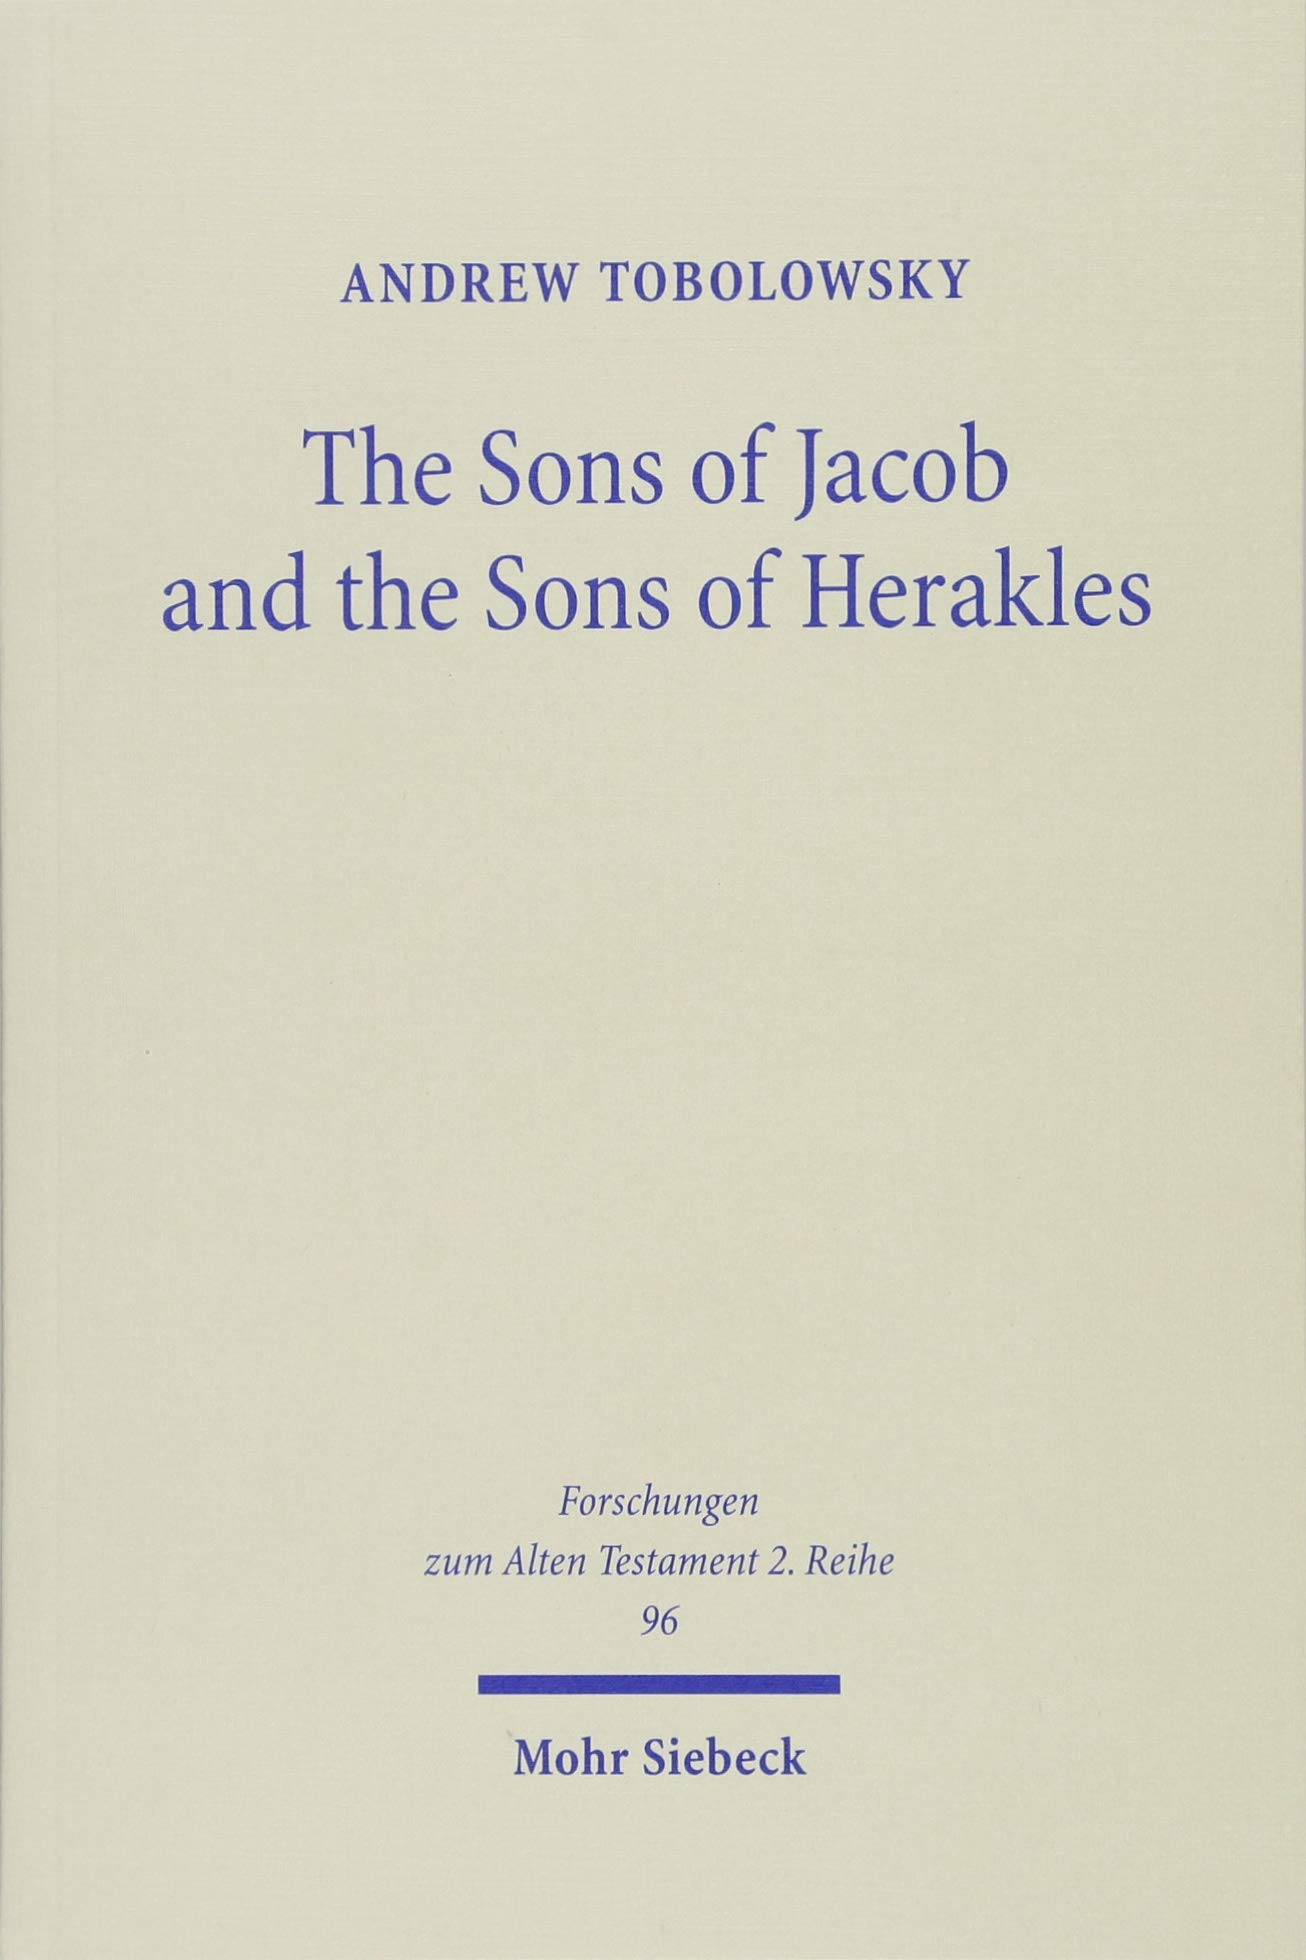 TOBOLOWSKY, A. The Sons of Jacob and the Sons of Herakles: The History of the Tribal System and the Organization of Biblical Identity. Tübingen: Mohr Siebeck, 2017, 283 p.